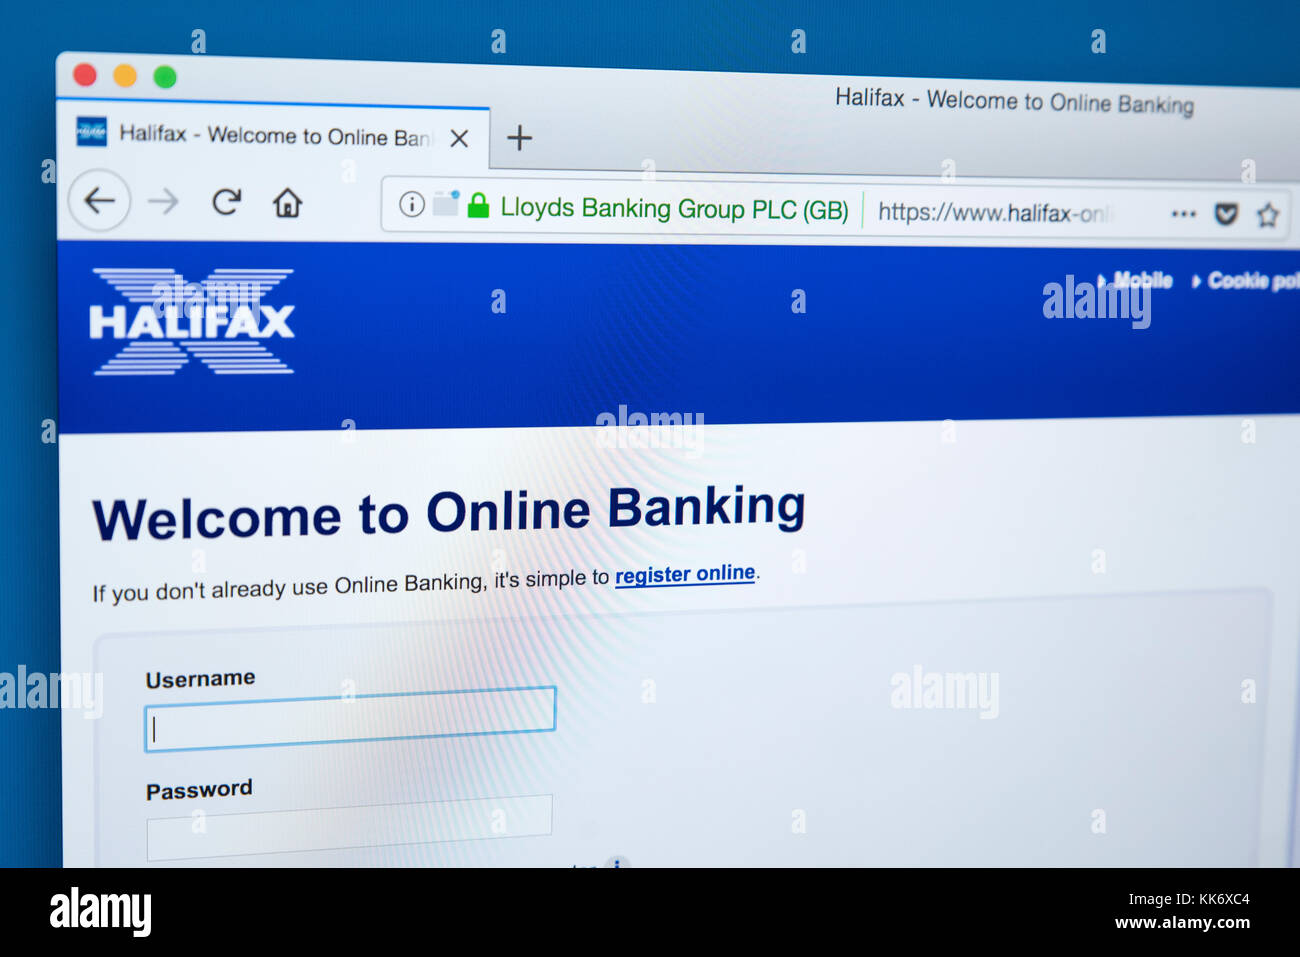 dating.com uk site online banking site